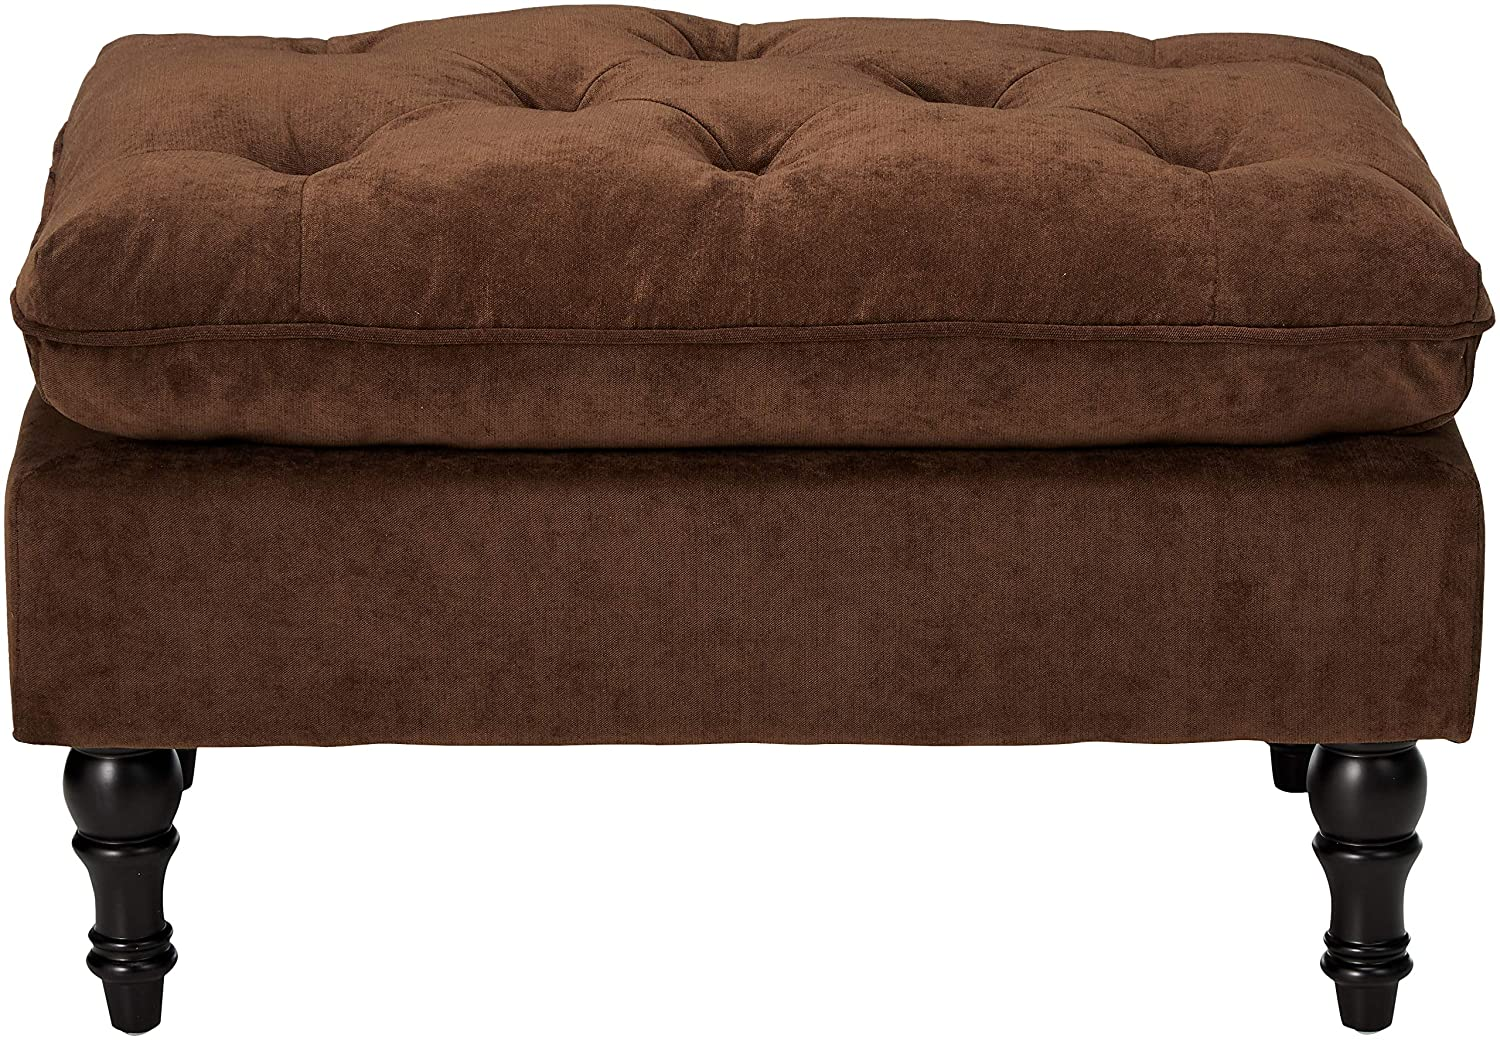 Christopher Knight Home 216608 Living Cordoba Chocolate Brown Tufted Ottoman,